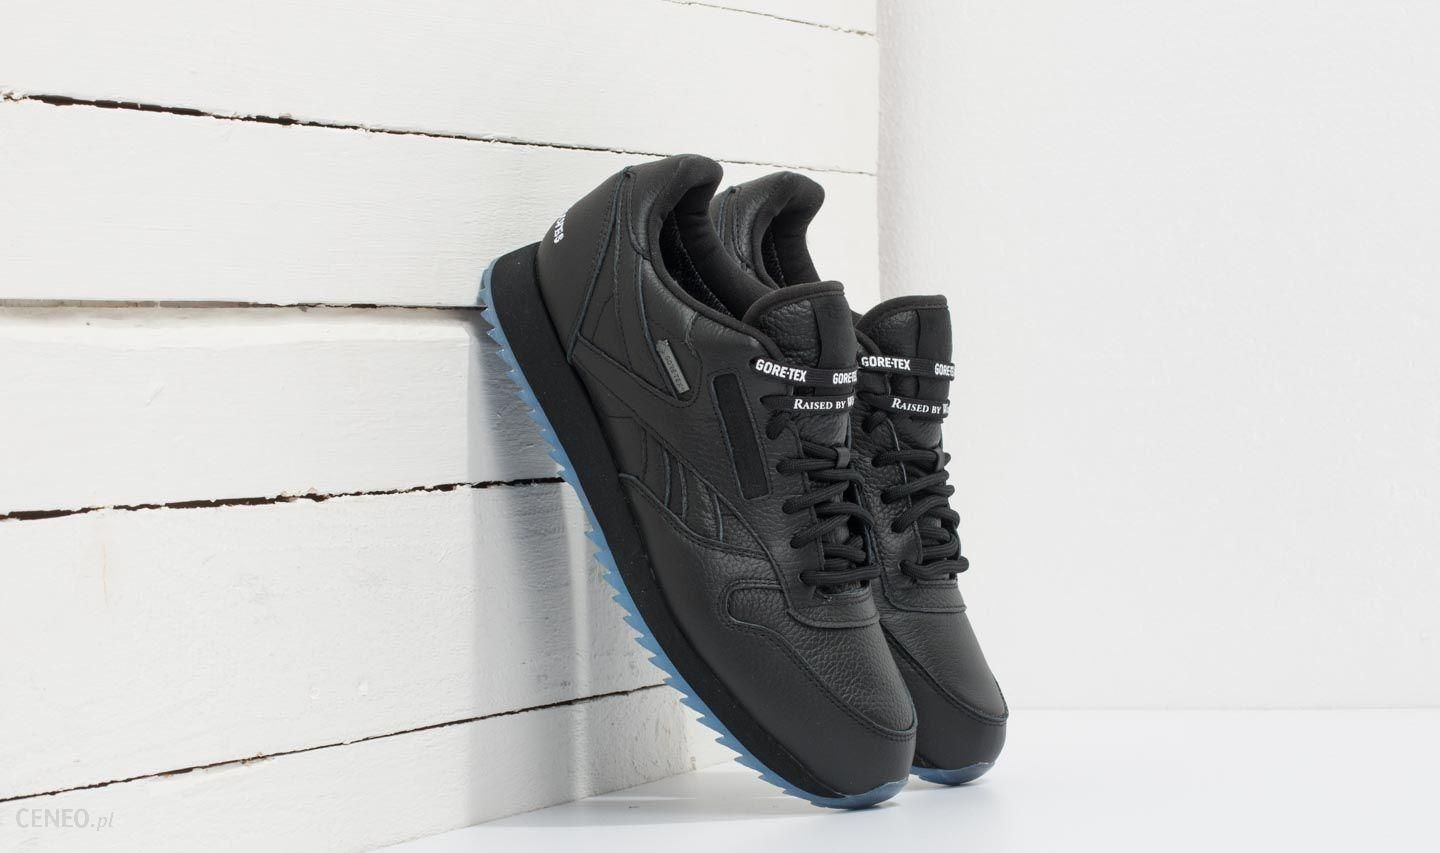 f431c011a9d Reebok x Raised by Wolves Classic Leather Ripple Gore-Tex Black  White-Ice